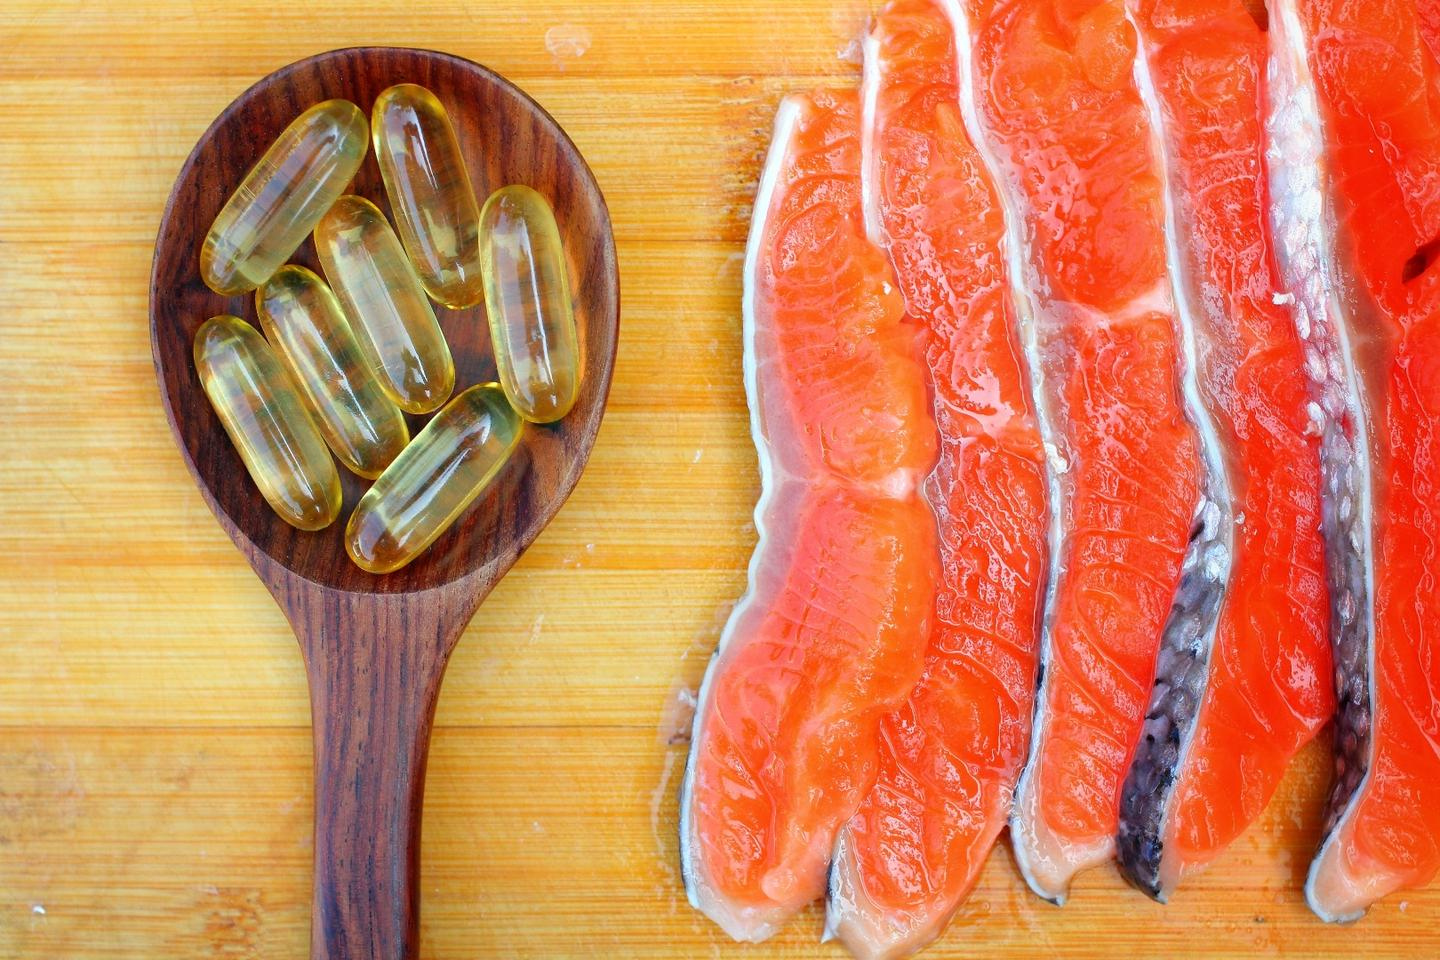 The mice consuming fish oil gained 5 to 10 percent less weight and 15 to 25 percent less fat over the course of the experiment